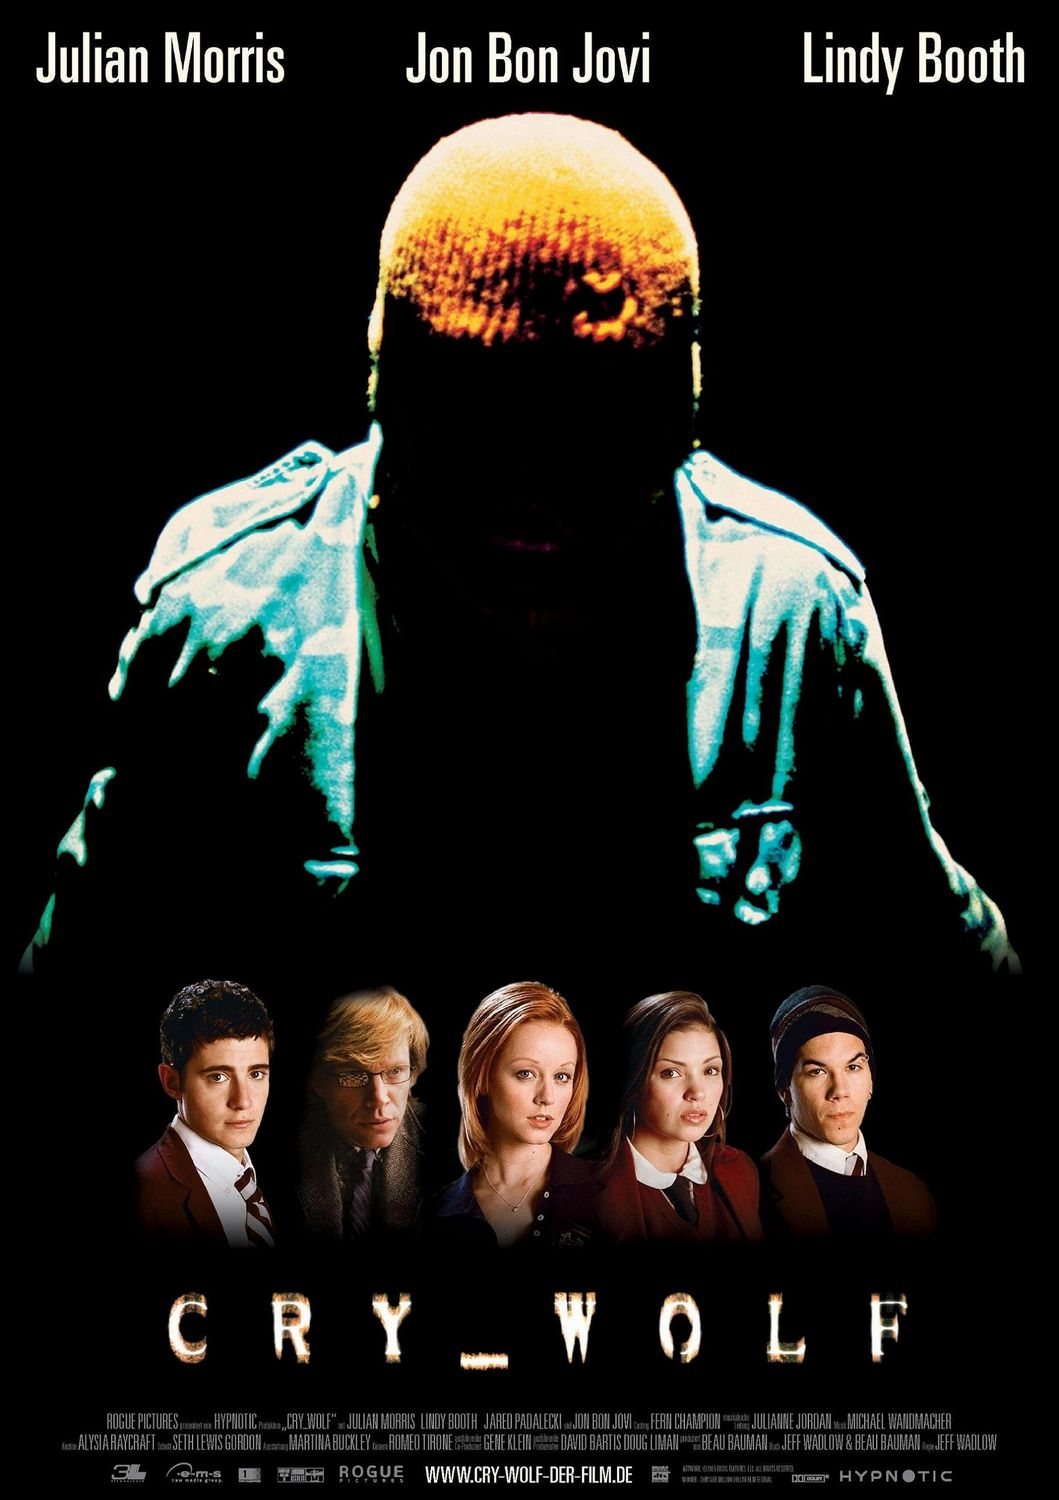 42. Cry Wolf (2005) - Guilty for dating itself by using early internet era gimmicks, Jeff Wadlow's Cry_wolf is still a charming little piece of slasher mind games. Capitalizing on its whodunit approach, it's the end of this early aughts thriller that forces it to the near bottom of our list.